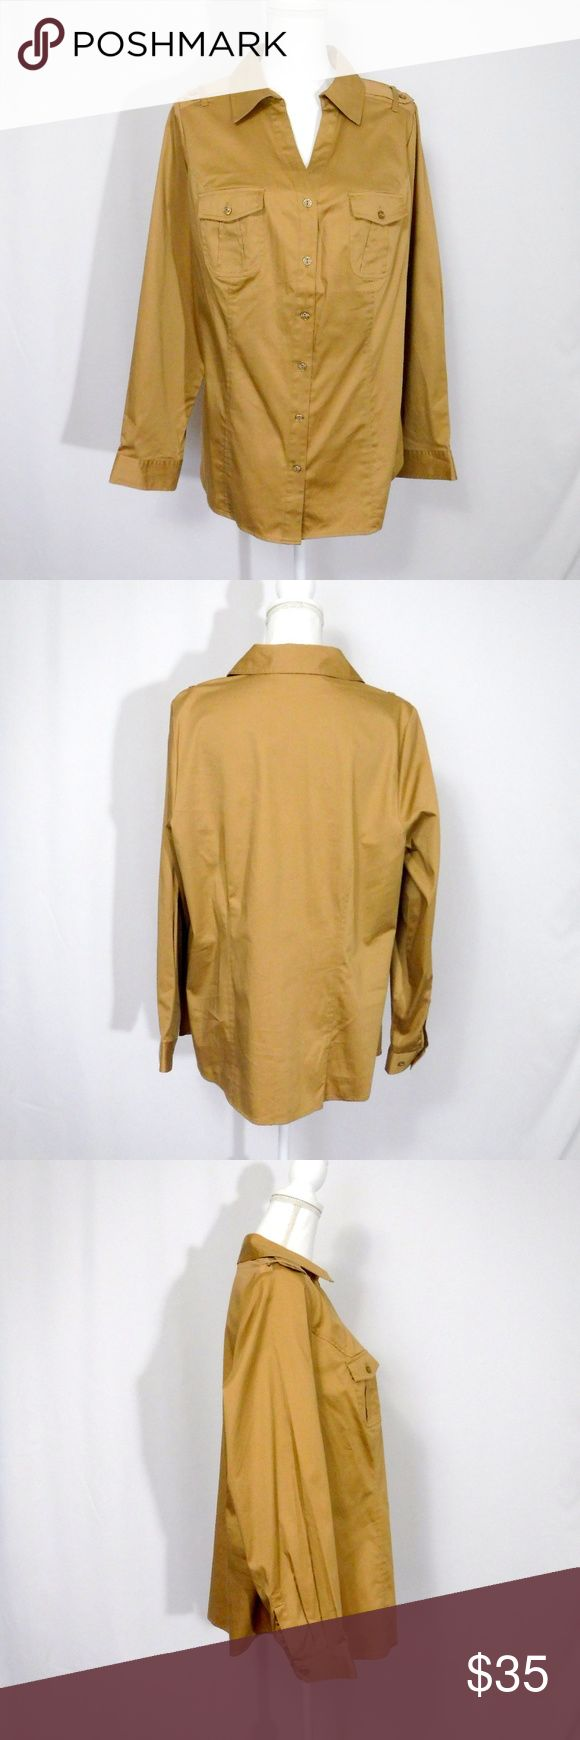 """NWT Lane Bryant Military Style Shirt Plus Size 16 Button Front Closure Long Sleeves with Double Button Cuffs 2 Pockets Fitted Fit Stretch Material  97% Cotton 12% Polyester 3% Spandex  New With Tag   All Measurements Posted Below are Aprox. & Taken While Laying Flat  Shoulders: 16"""" Under Arms: 22""""(44) Length: 27""""  Please Ask Any Questions You may Have Before Purchasing.  Smoke & Pet Free Home  Please Check Out My Other Items  Inv#252 Lane Bryant Tops Button Down Shirts"""